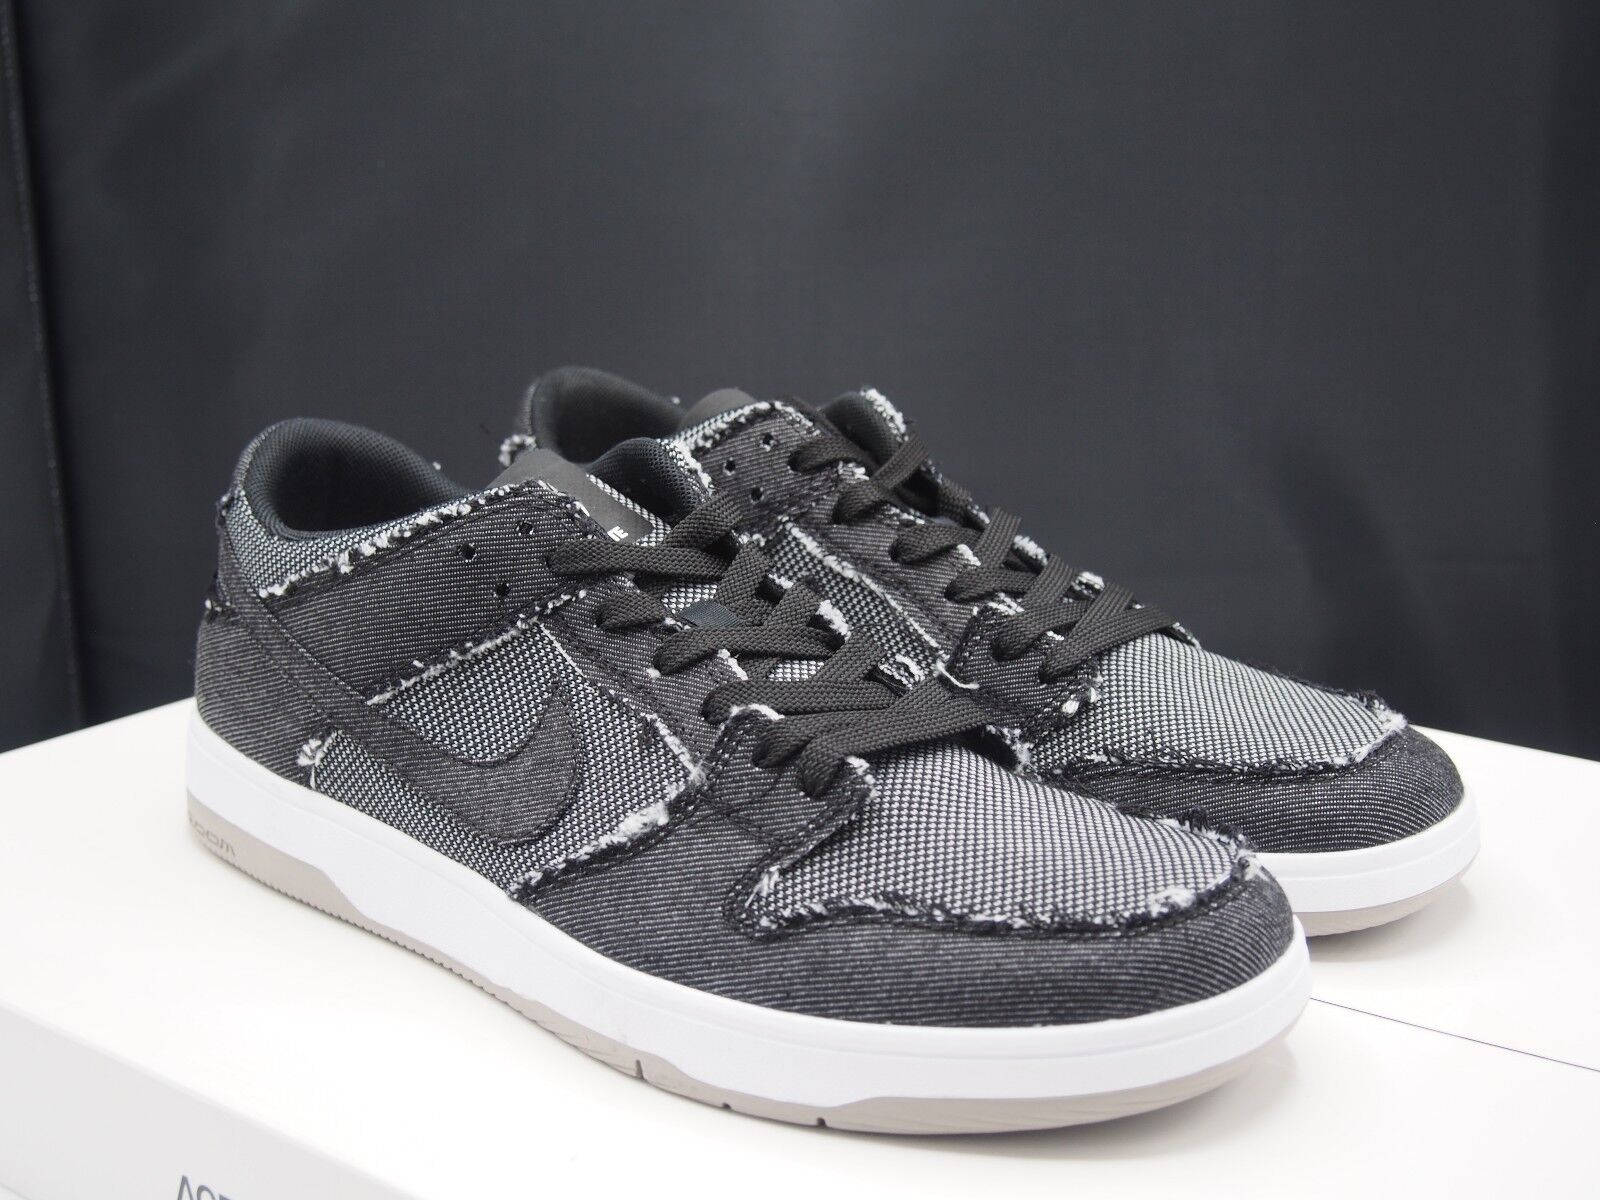 Nike SB Zoom Dunk Low Elite QS